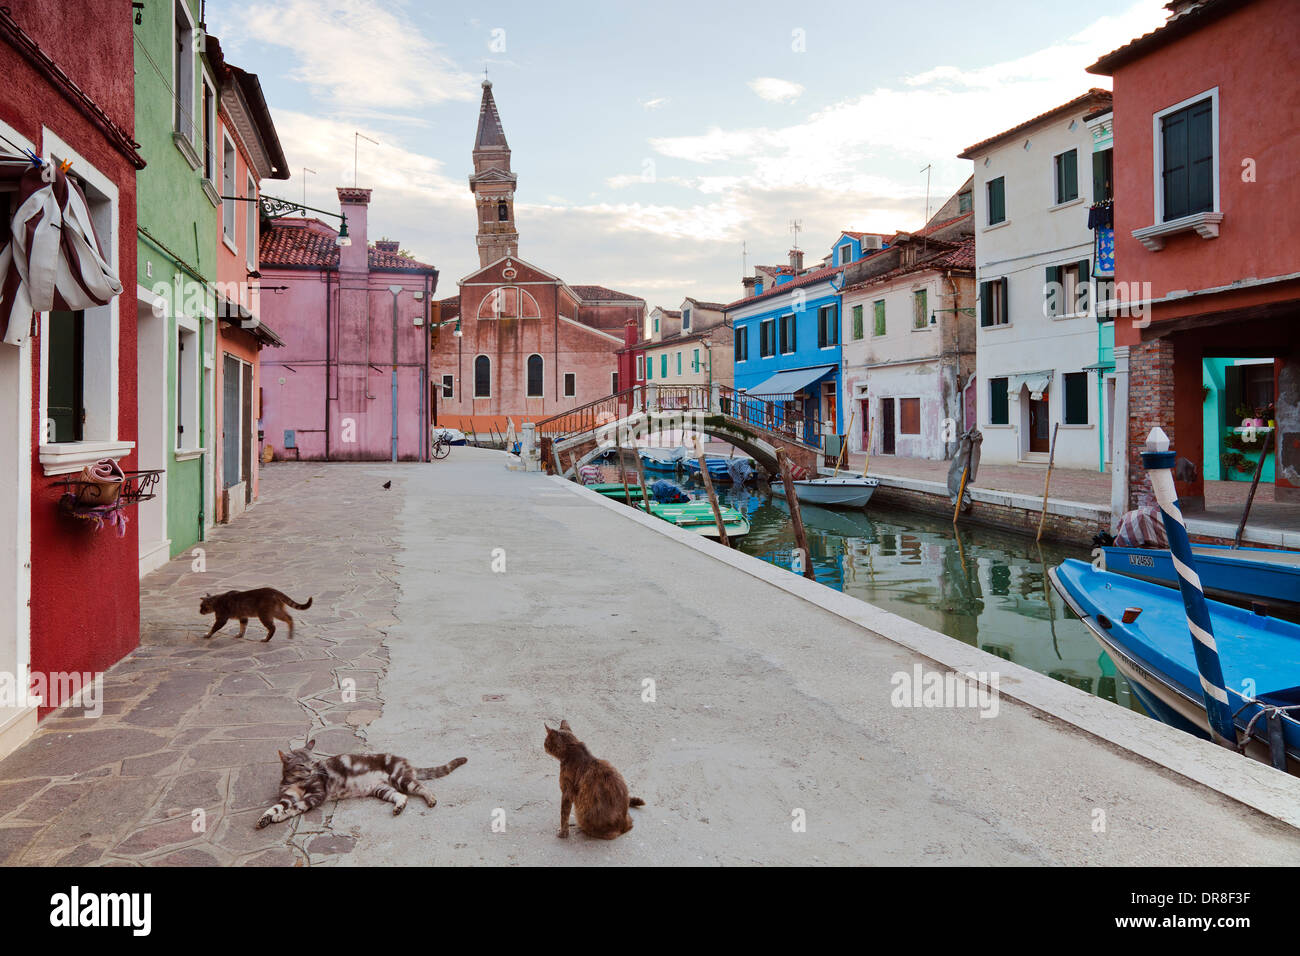 Burano - tilting tower of the church San Martini, Italy; Chiesa di San Martini - Stock Image